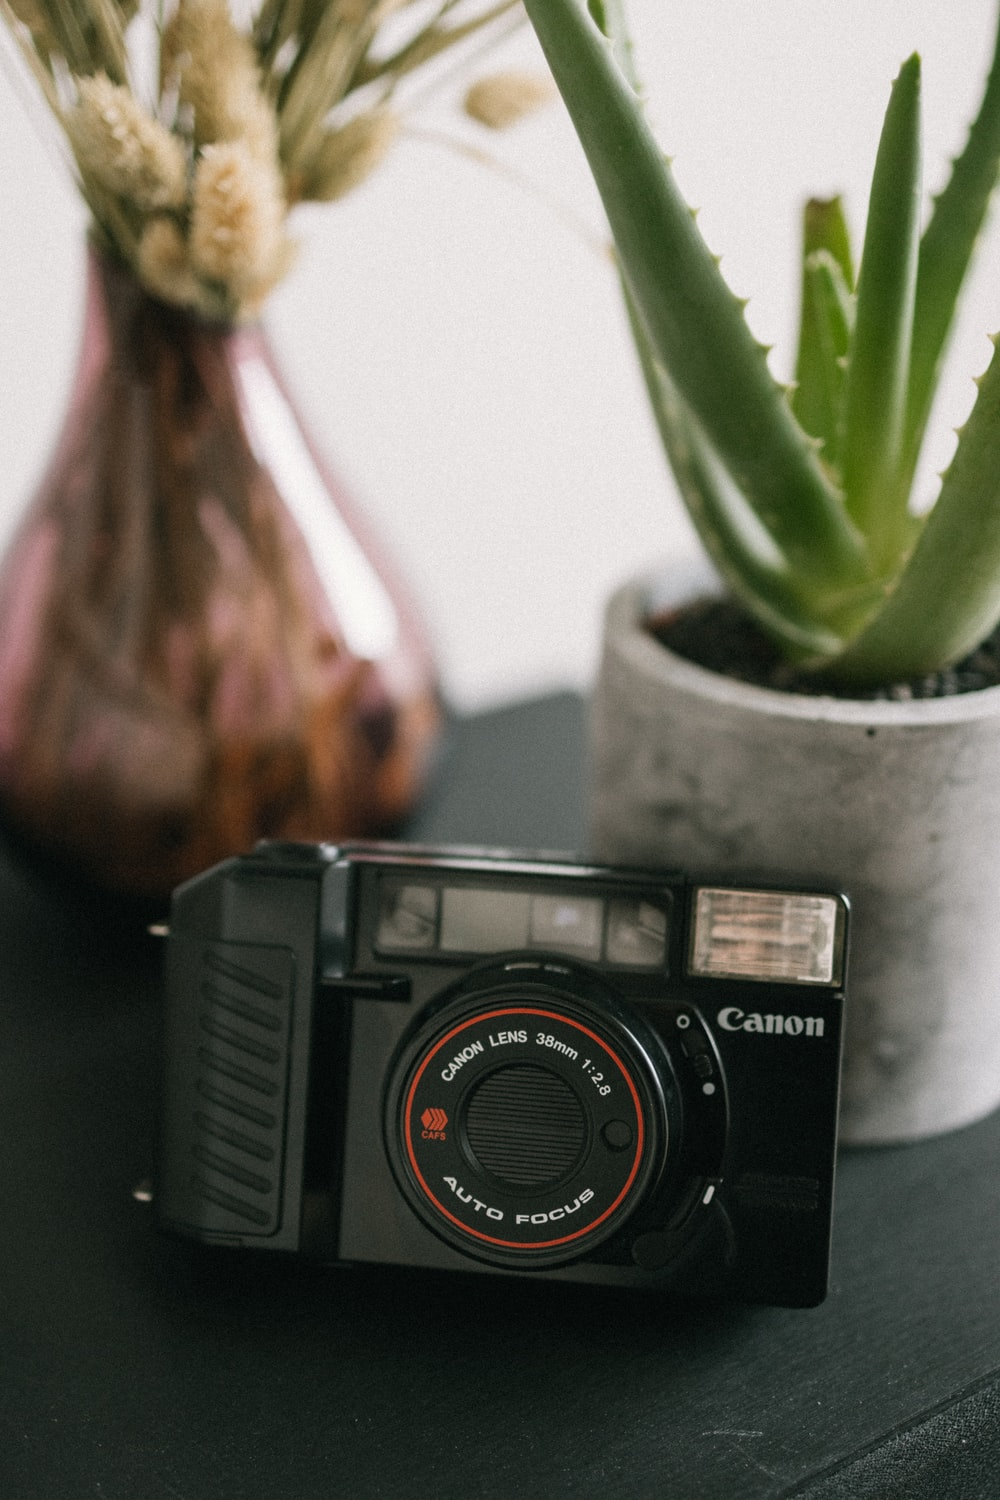 black and silver camera beside green plant